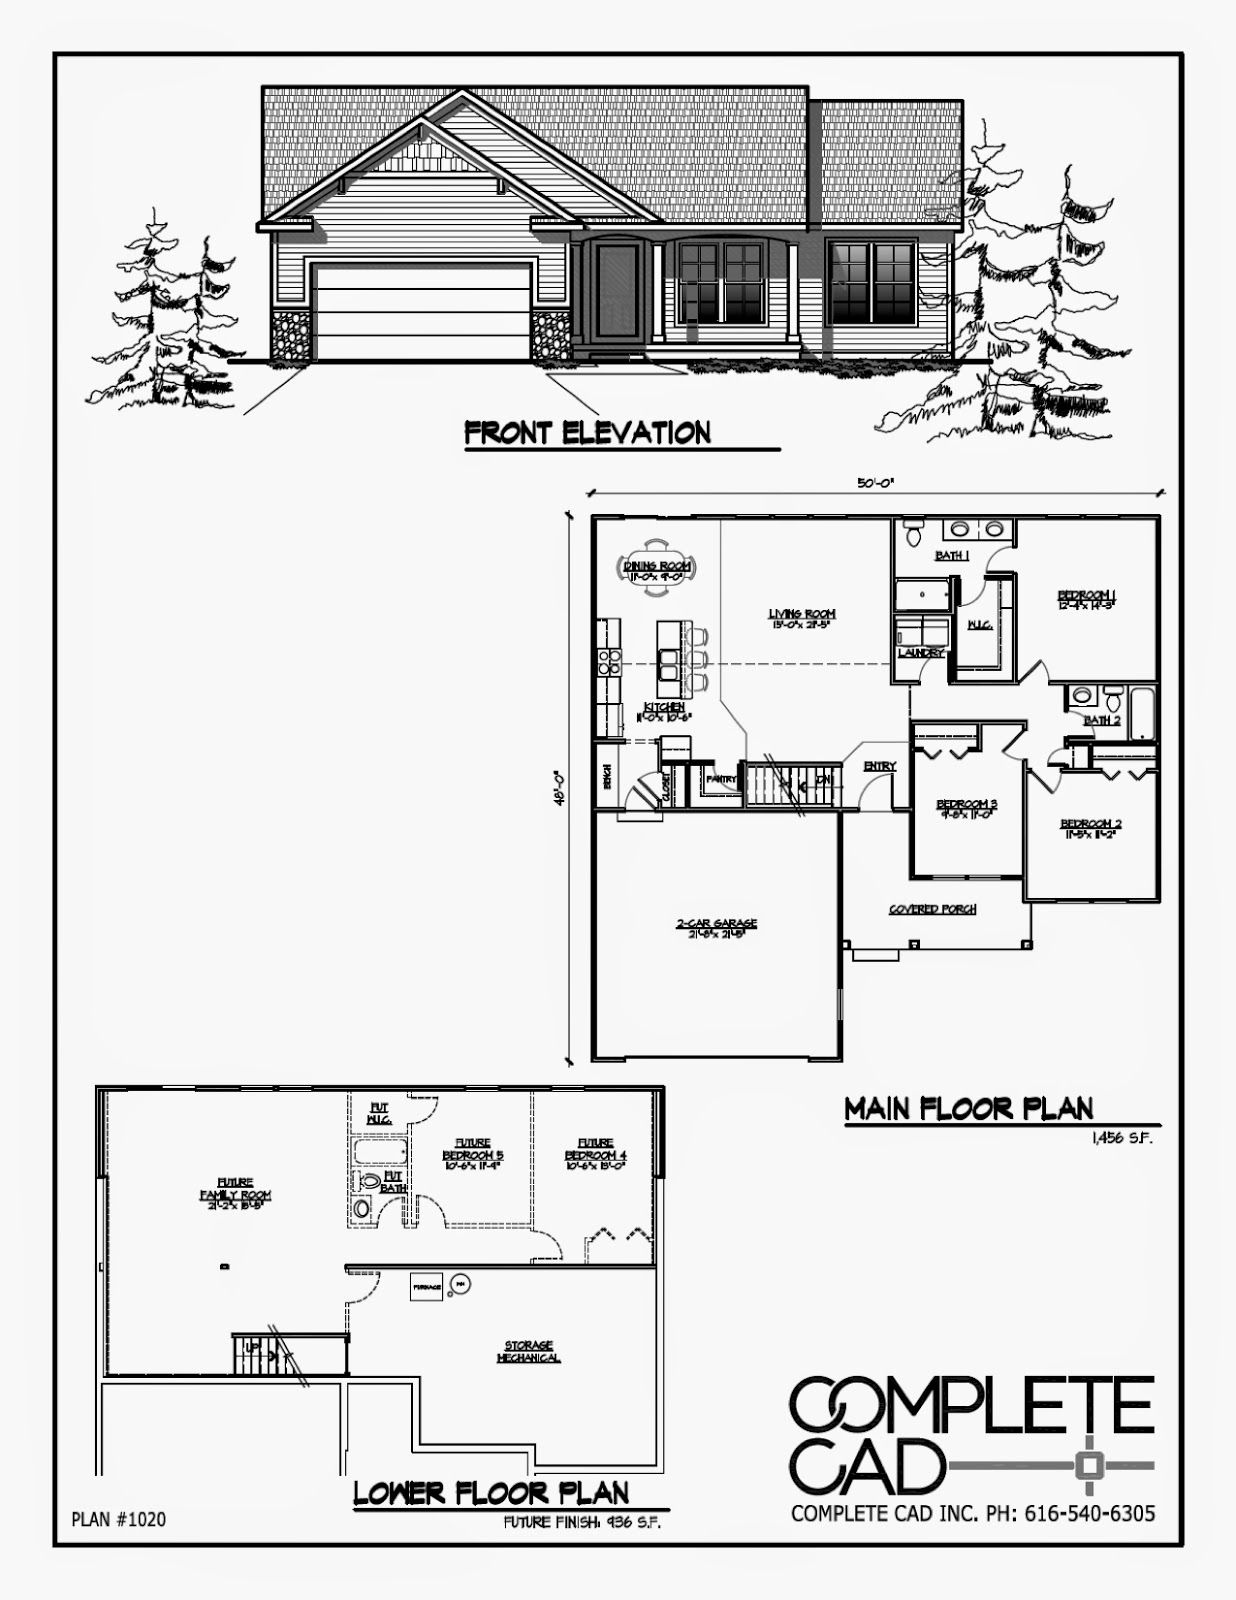 3 Bp Blogspot Com 4vduca1gcui Vrq8i Ikbli Aaaaaaaayb8 Aireetp Fmk S1600 Completecad Pl Accessible House Plans Master Bedroom Floor Plan Ideas Accessible House